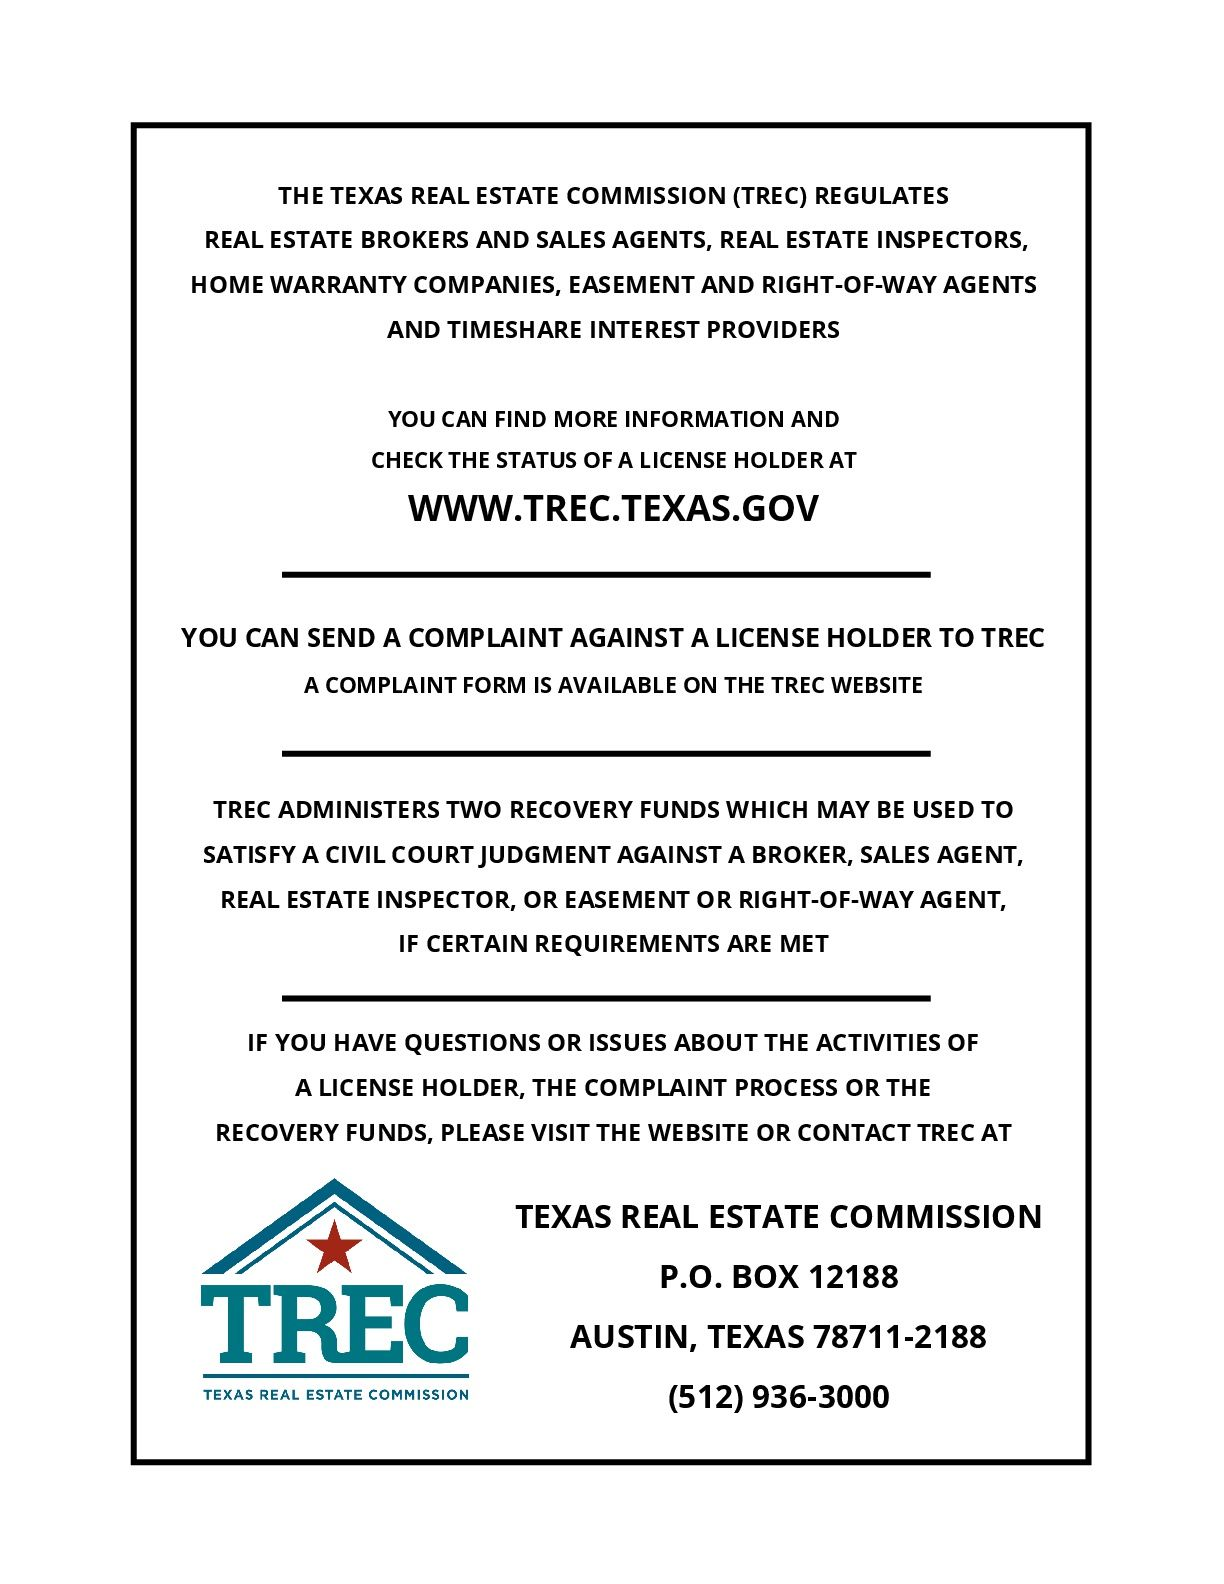 Texas Law Requires All Real Estate License Holders To Give The Following Information On Texas Real Estate Consumer Protection Home Warranty Companies